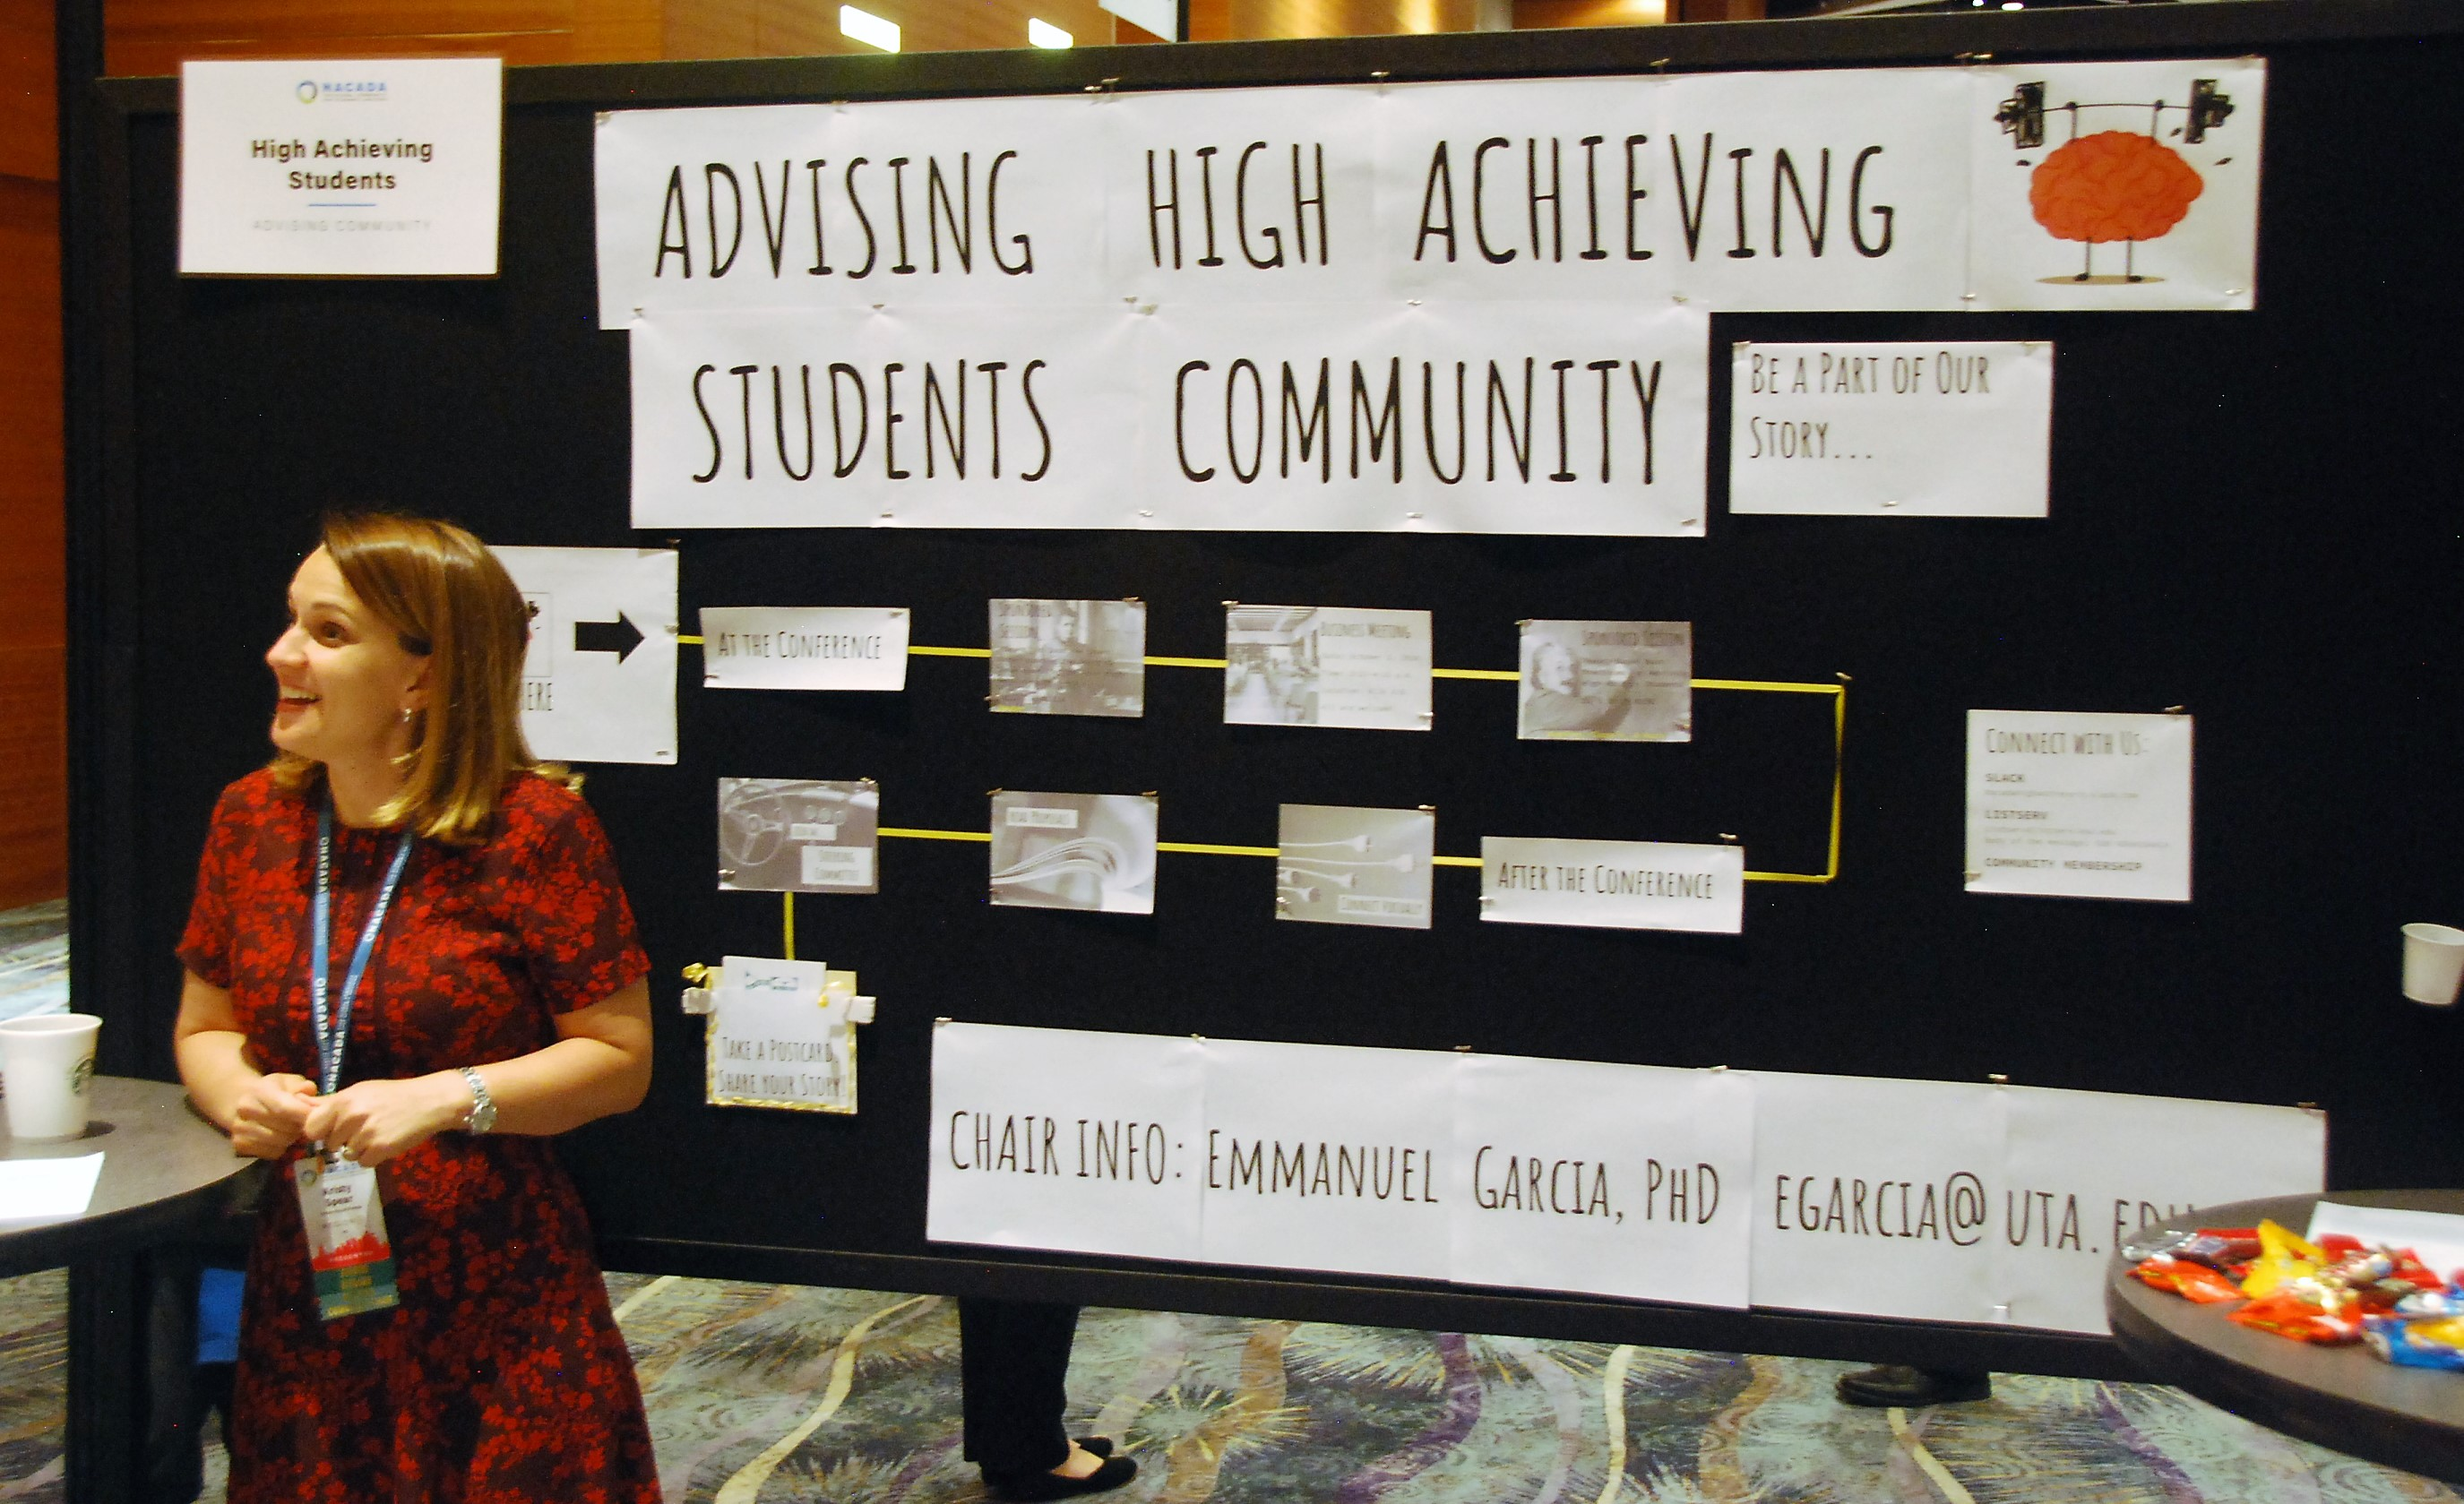 Advising High Achieving Students